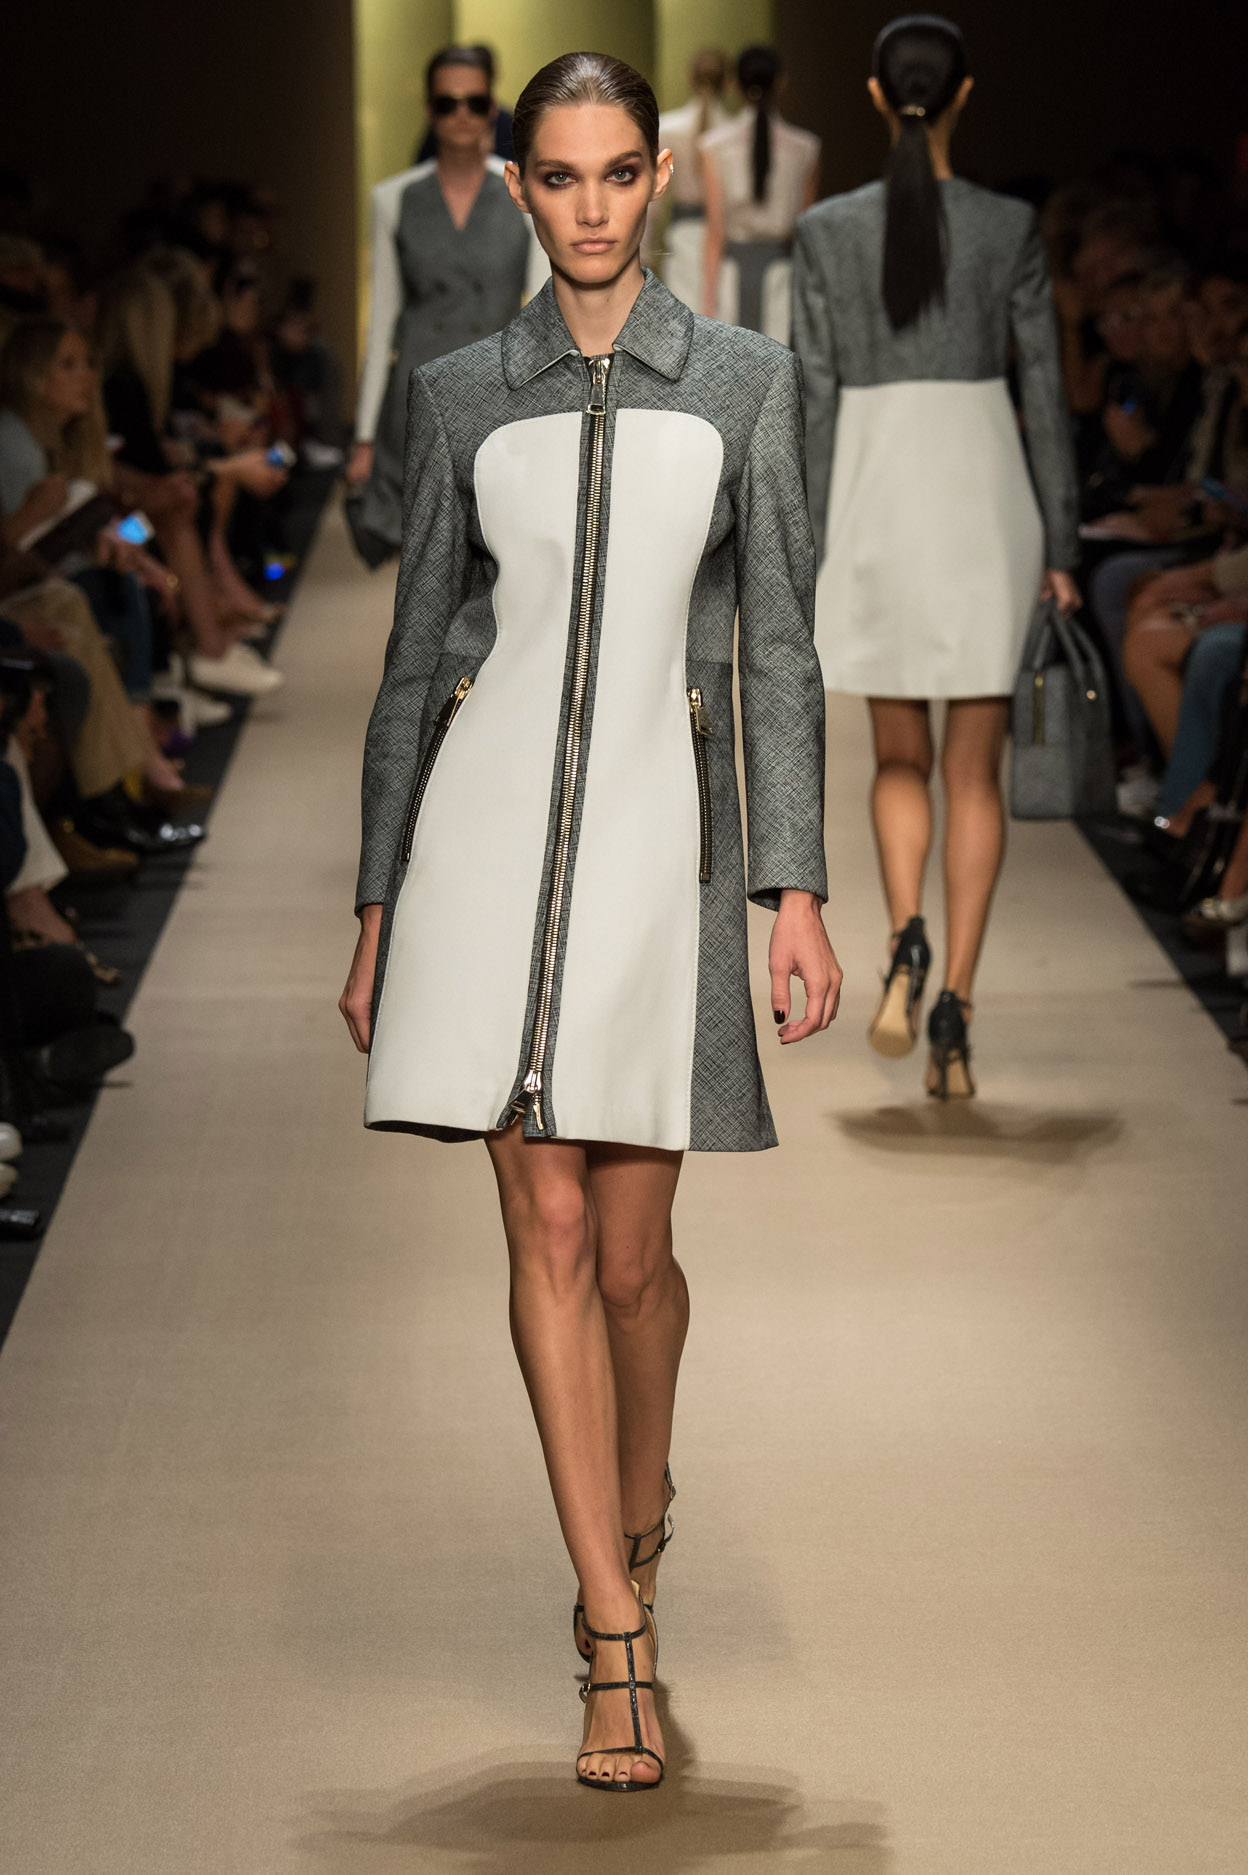 Guy Laroche coatdress by Marcel Marongiu, Spring 2015